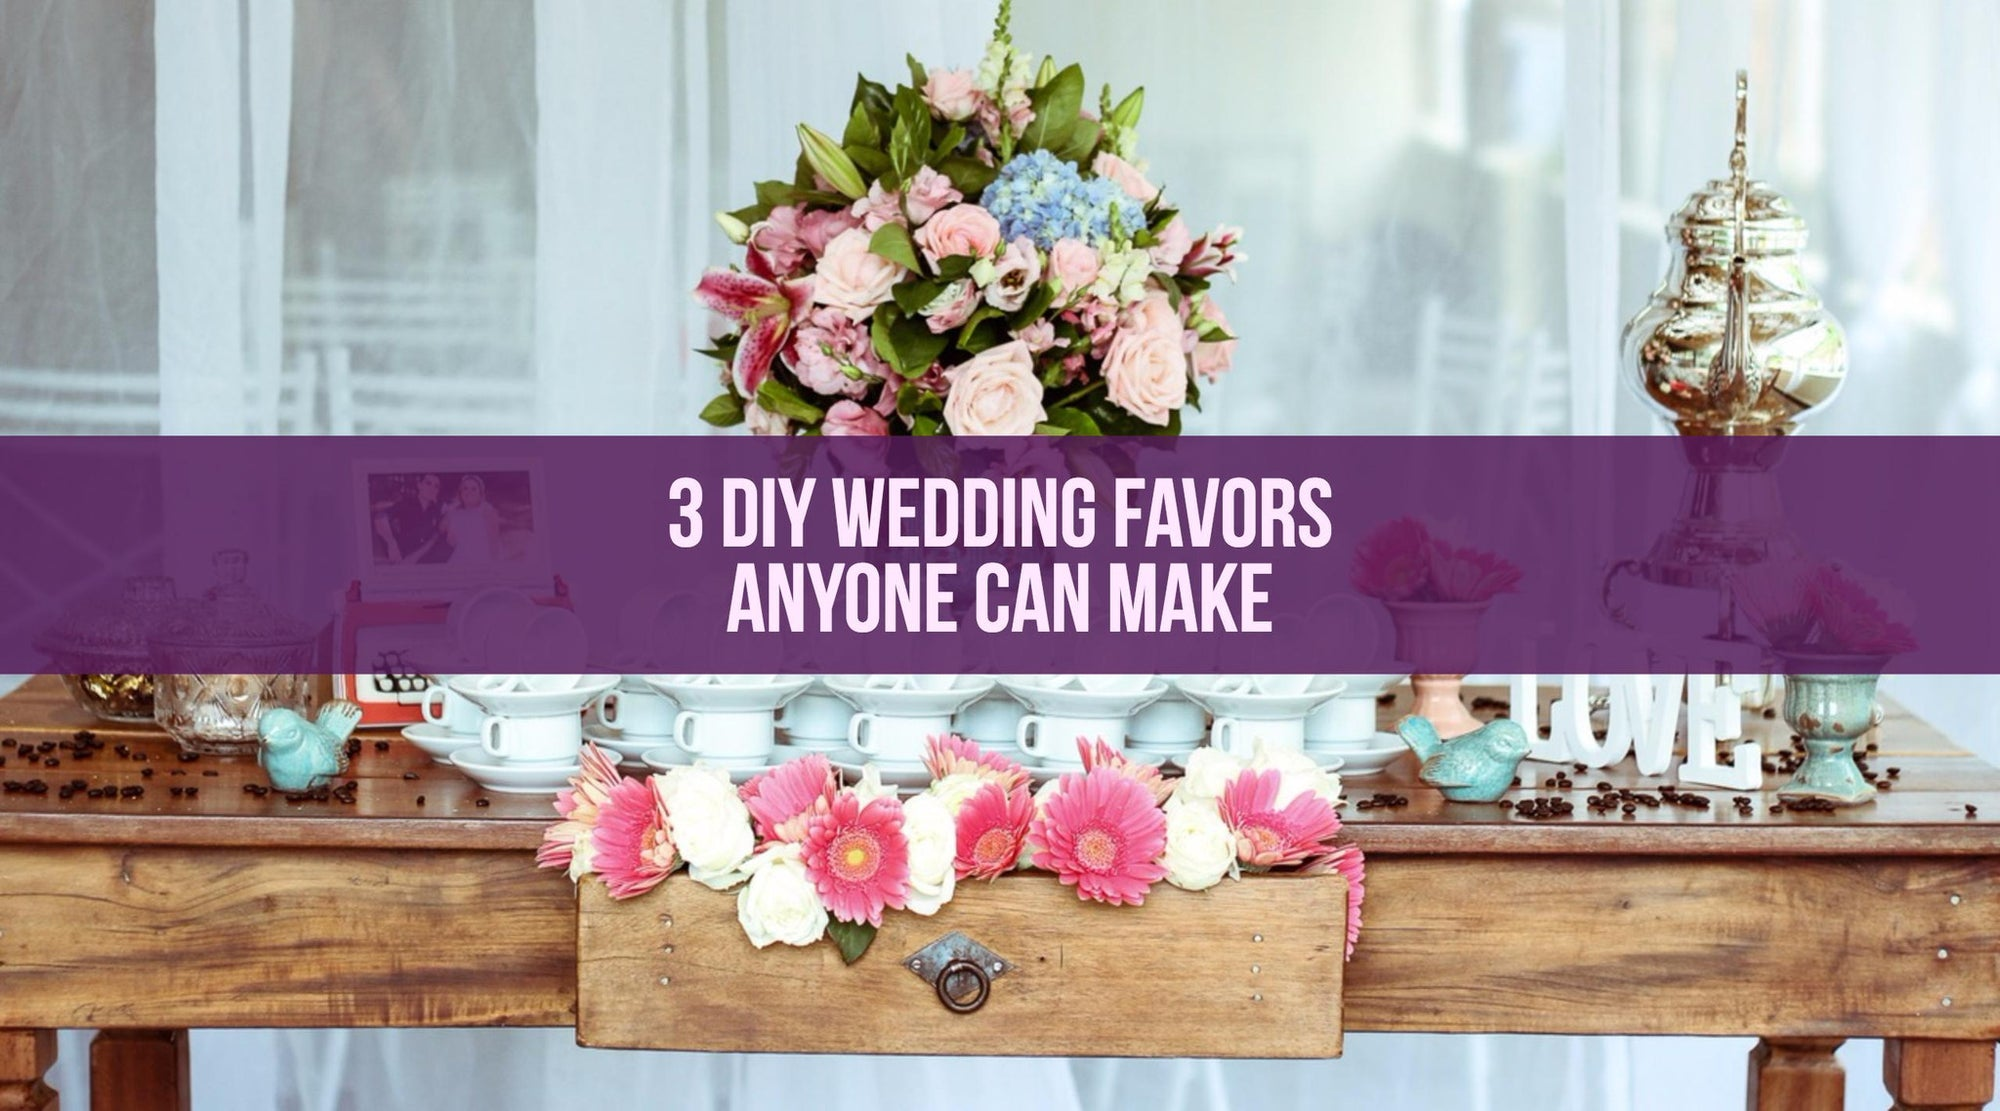 3 DIY Wedding Favors Anyone Can Make